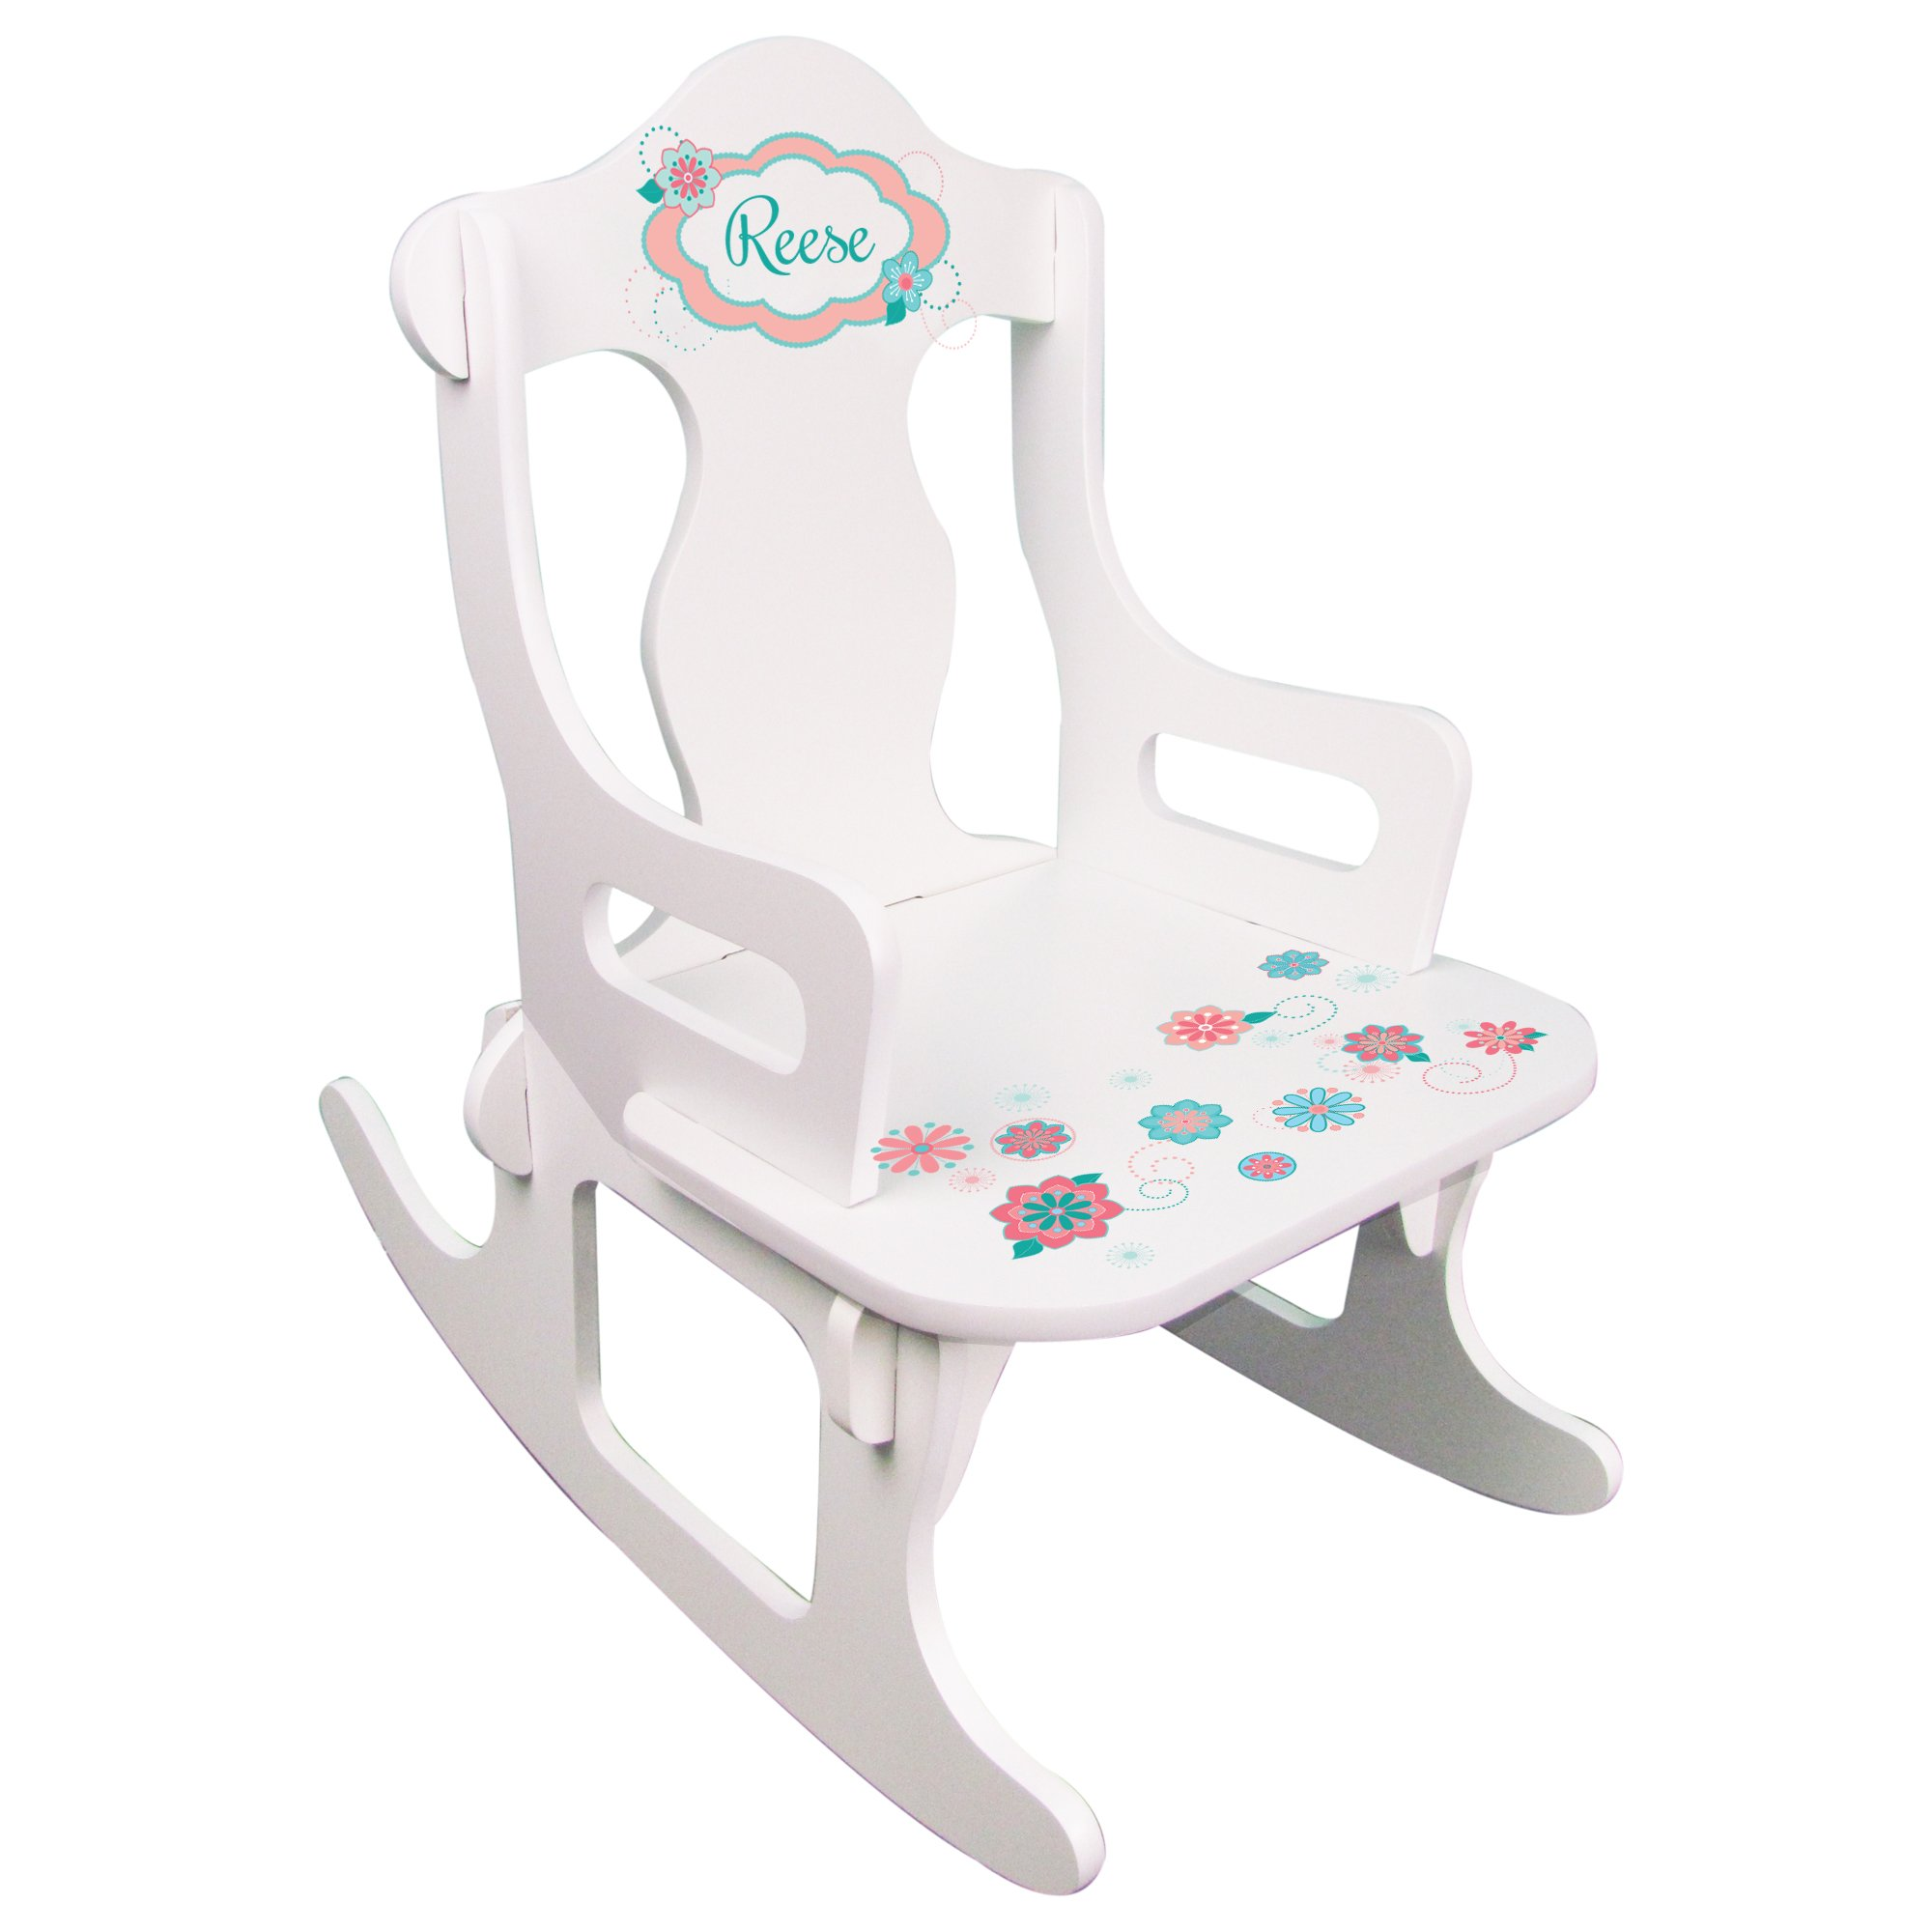 Personalized Child's Coral Scope Puzzle Rocking Chair